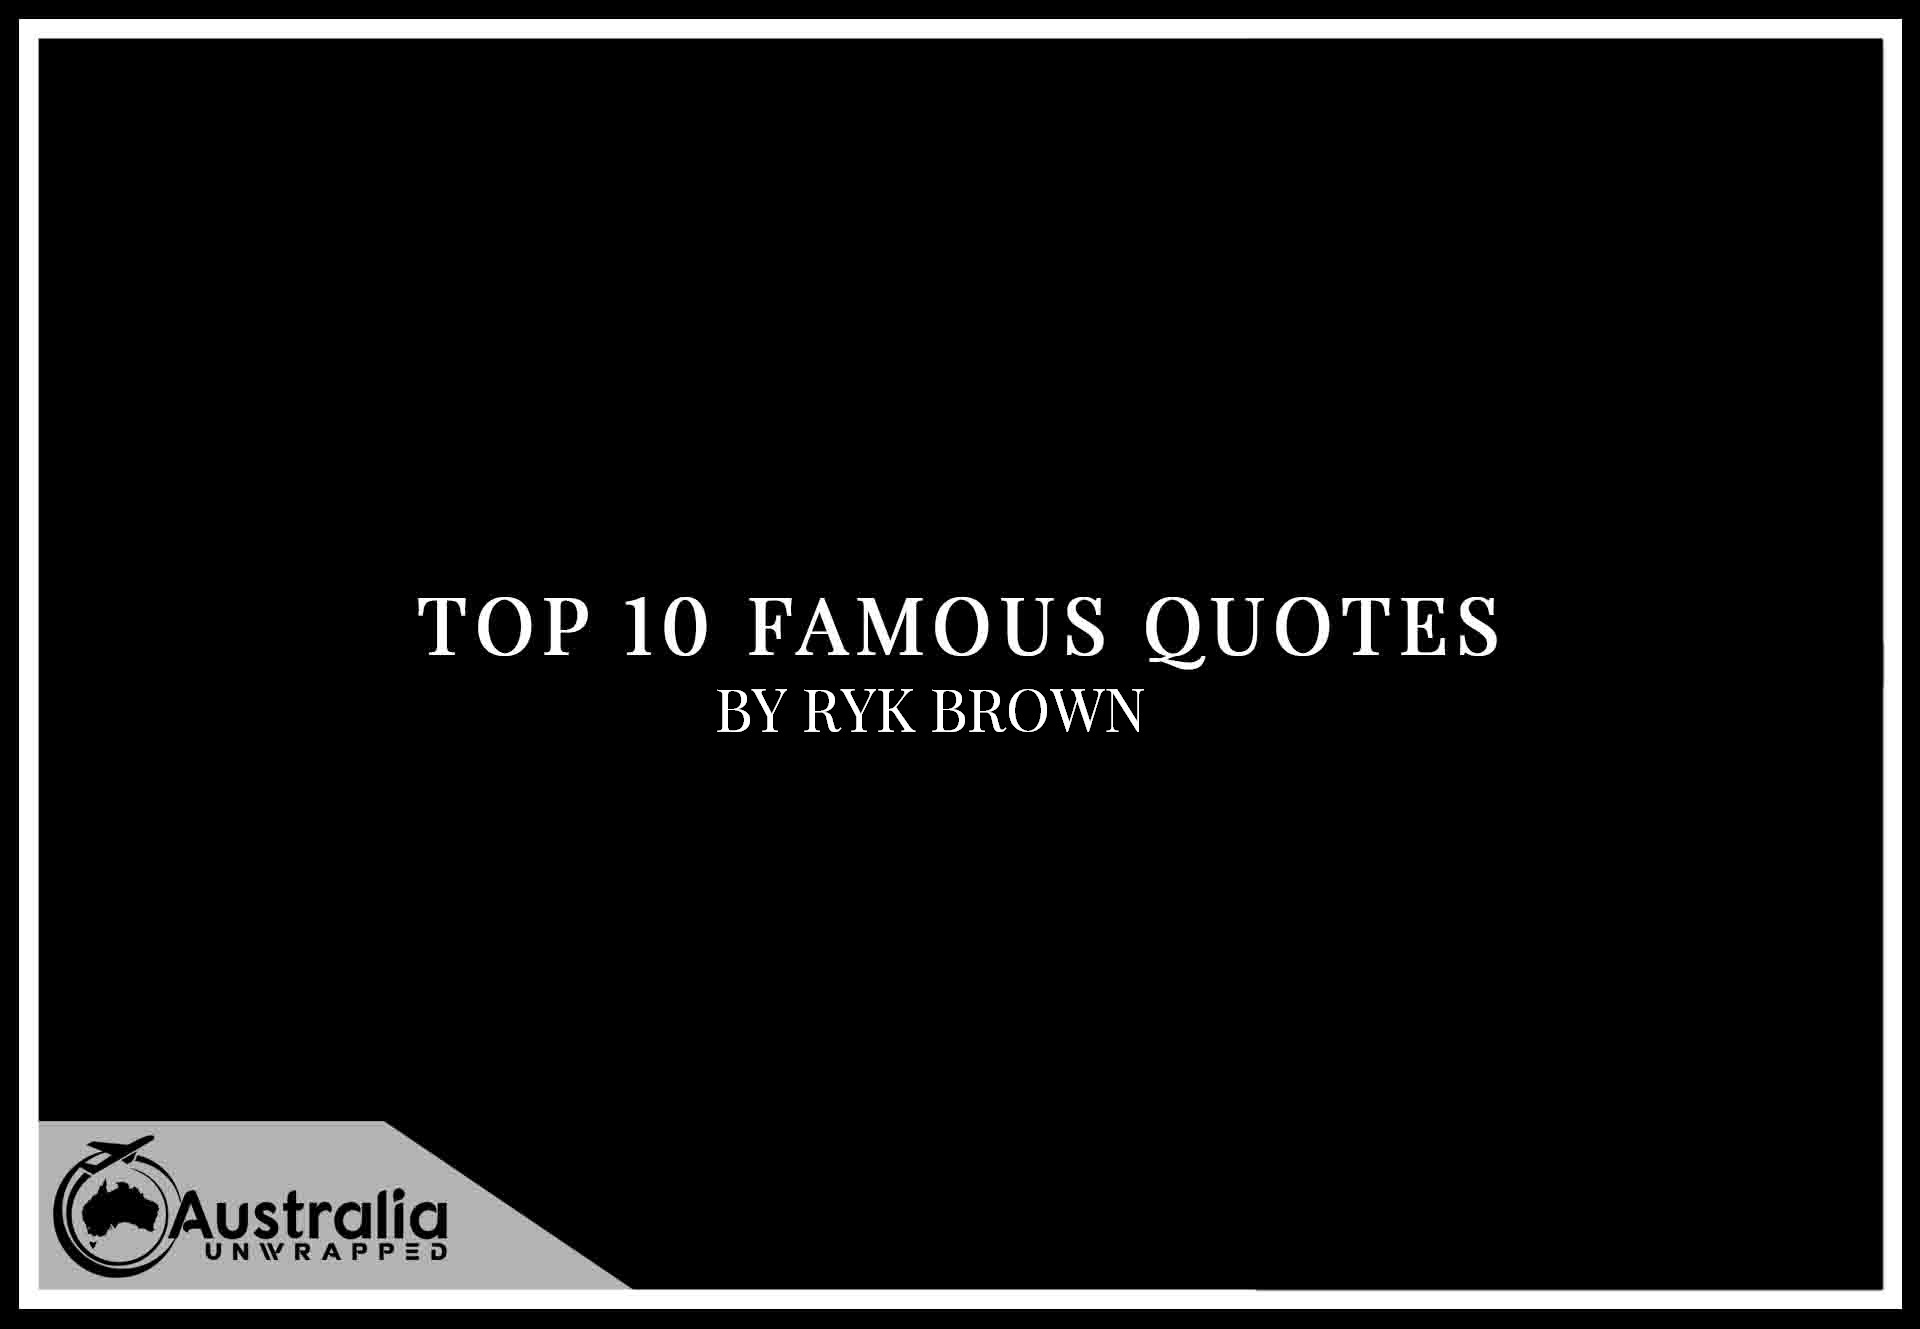 Top 10 Famous Quotes by Author Ryk Brown